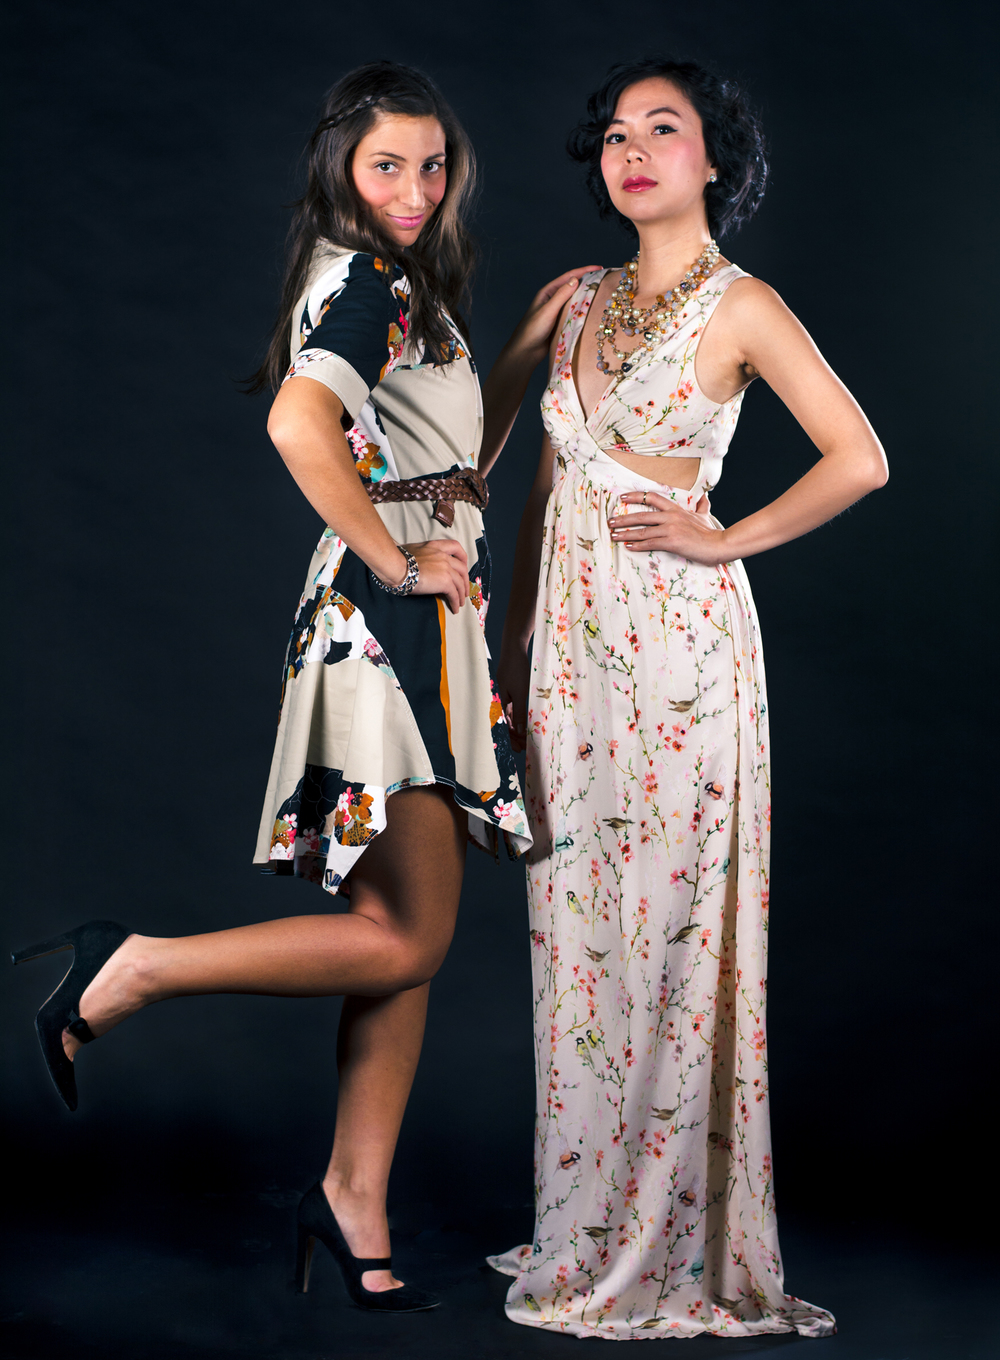 Frocks_Studio_Shoot-10-1.jpg